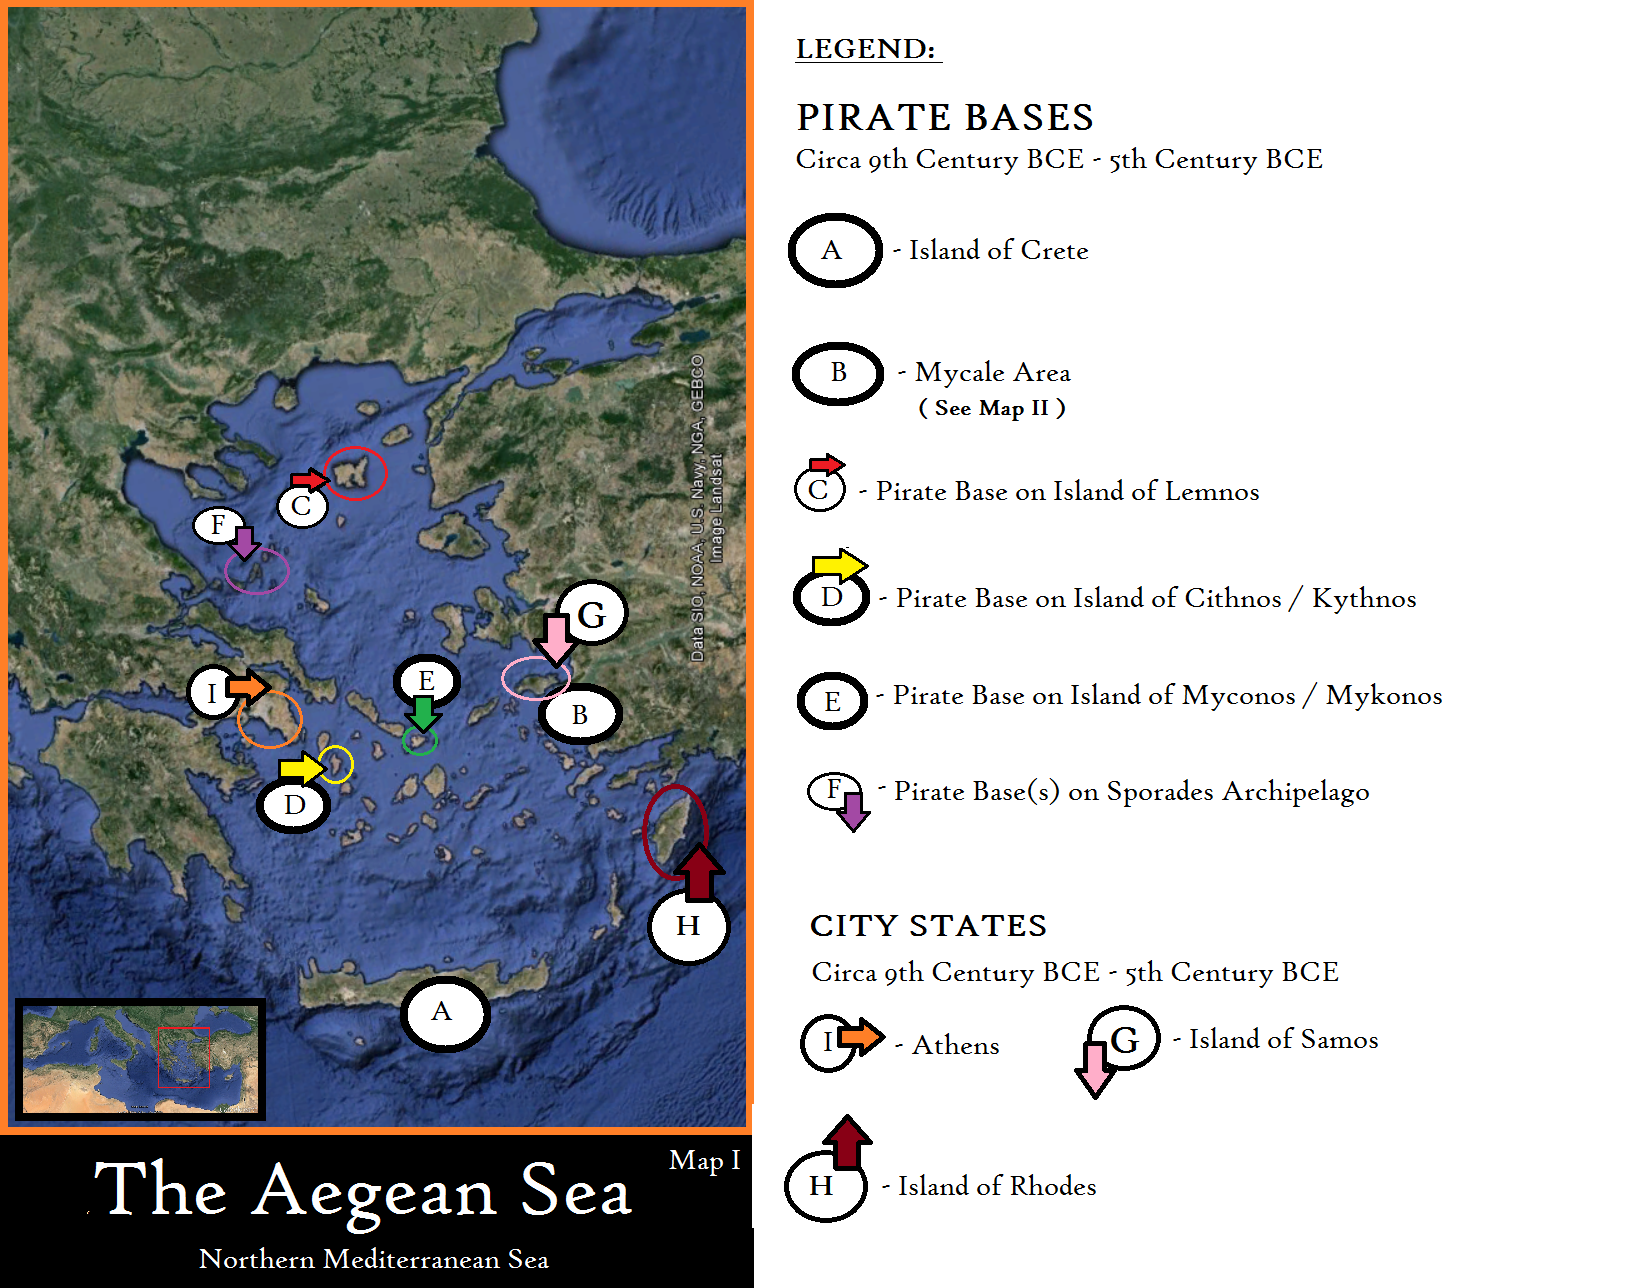 Locations of Greek City States as well as Pirate Bases